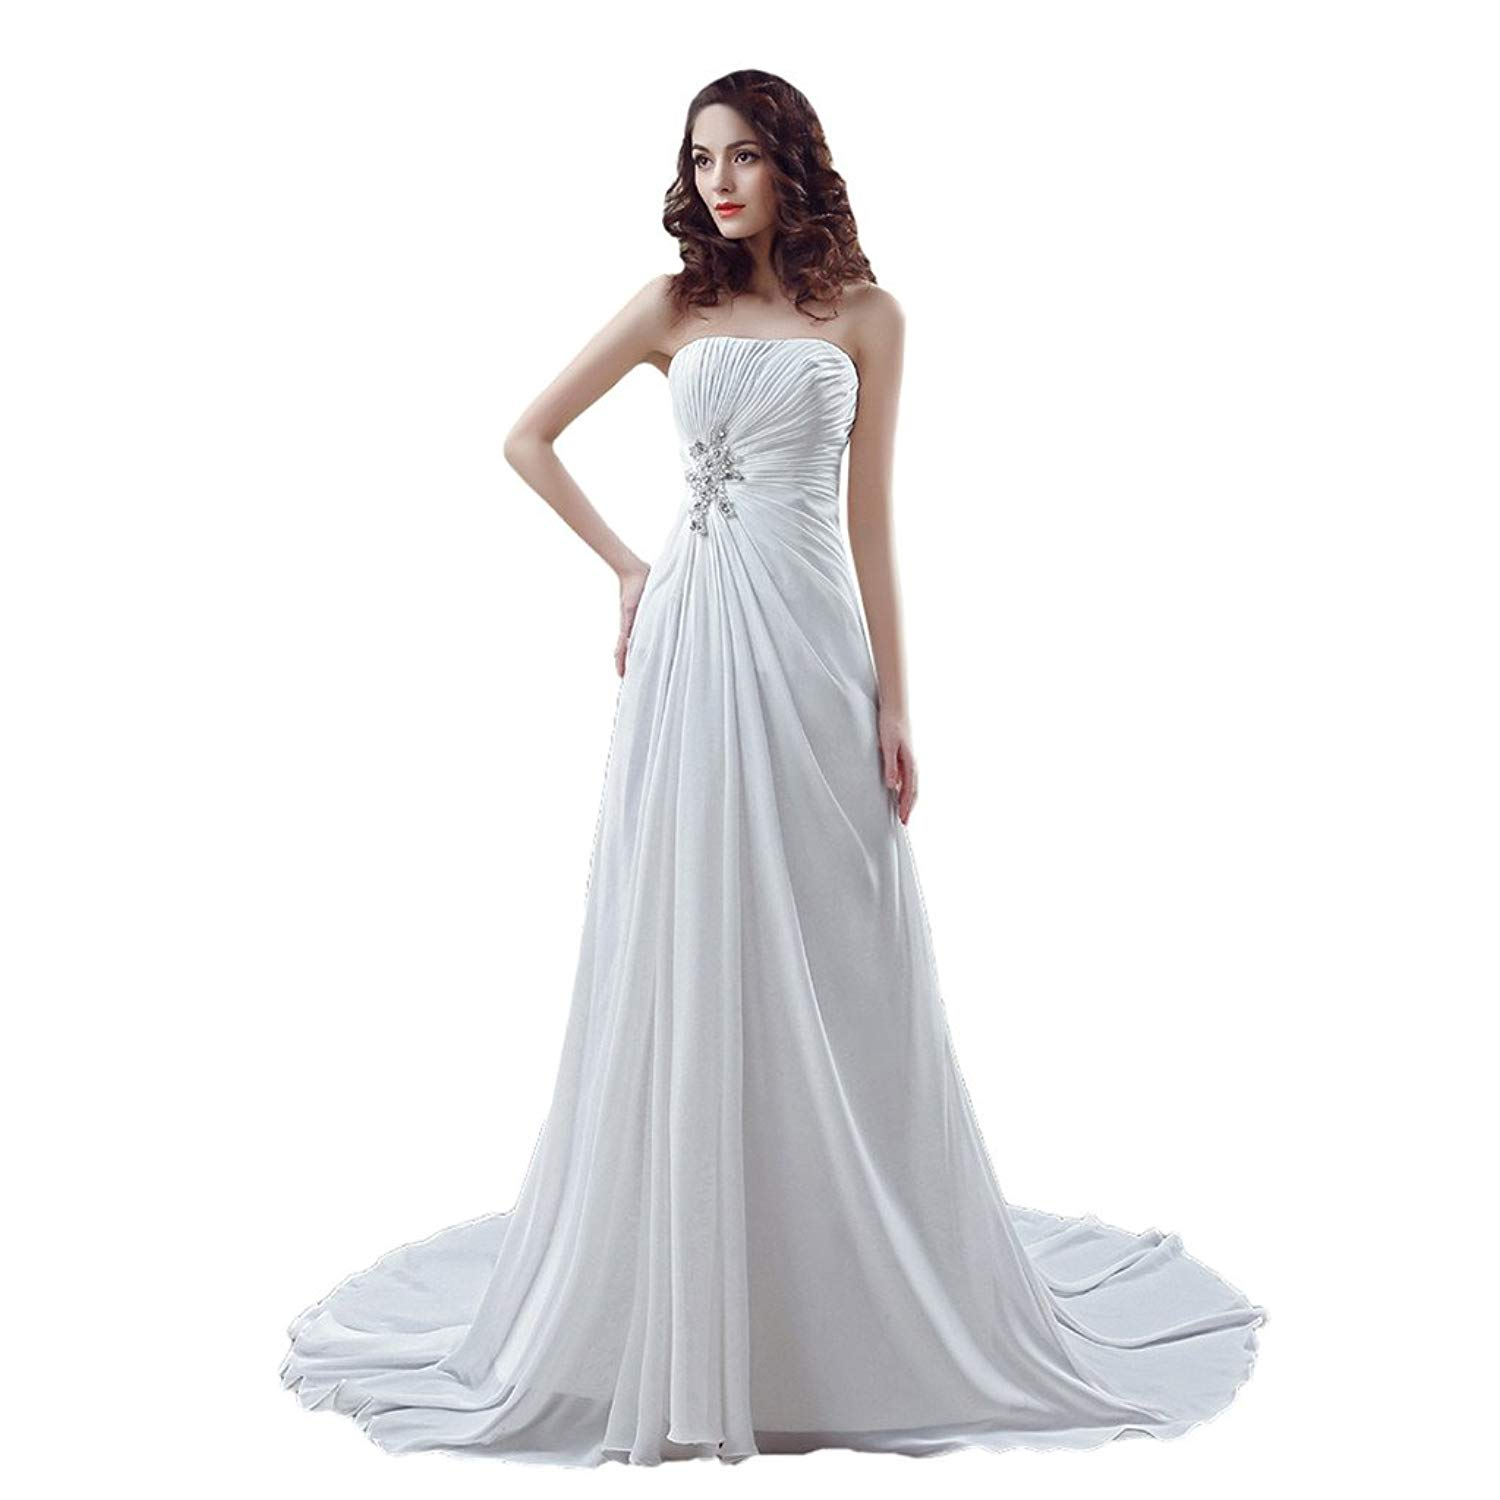 YSFS Women's Strapless Chiffon Bridal Gowns Wedding Dresses